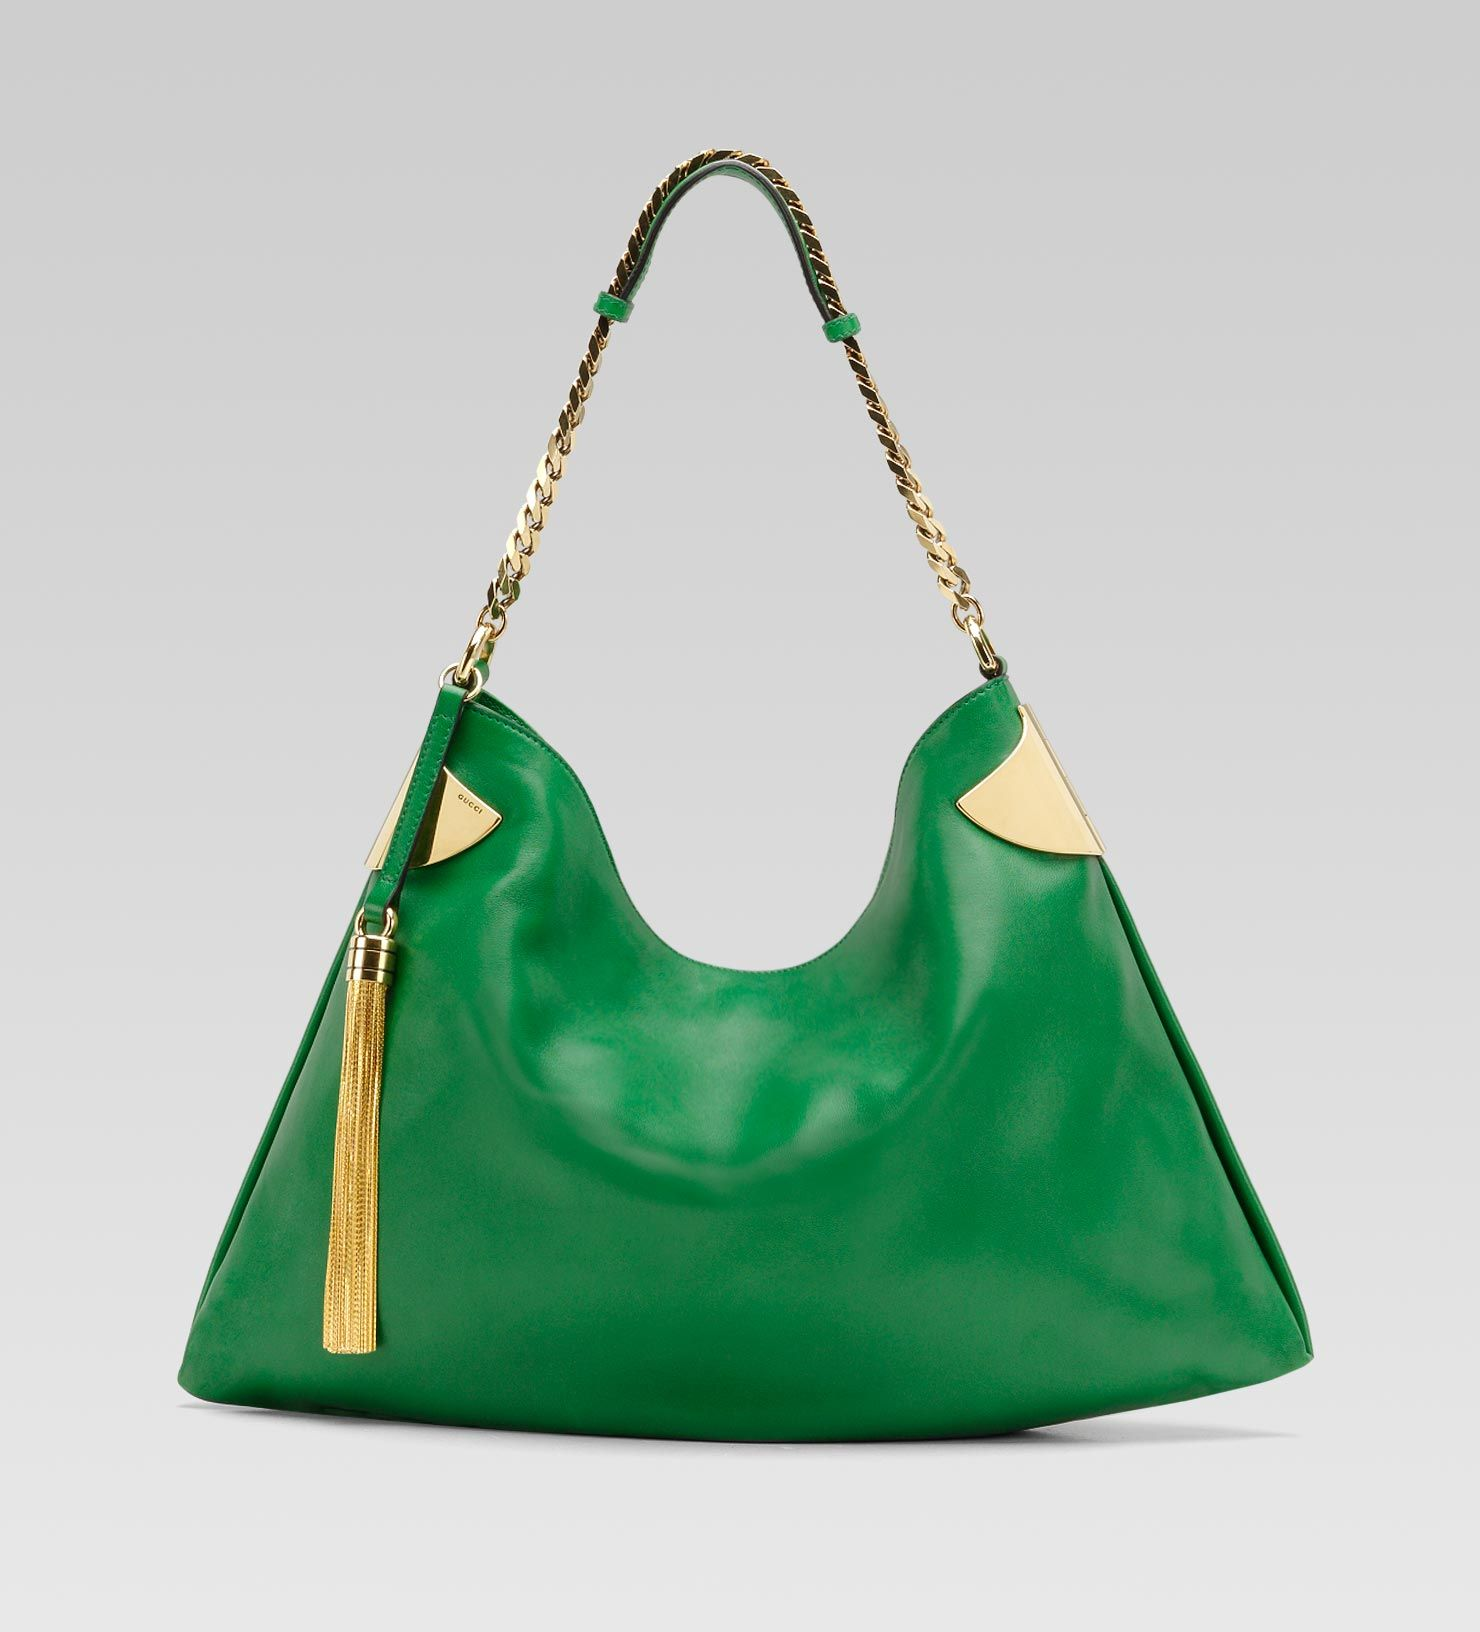 9e1694c278a Gucci  1970s  handbag in green leather